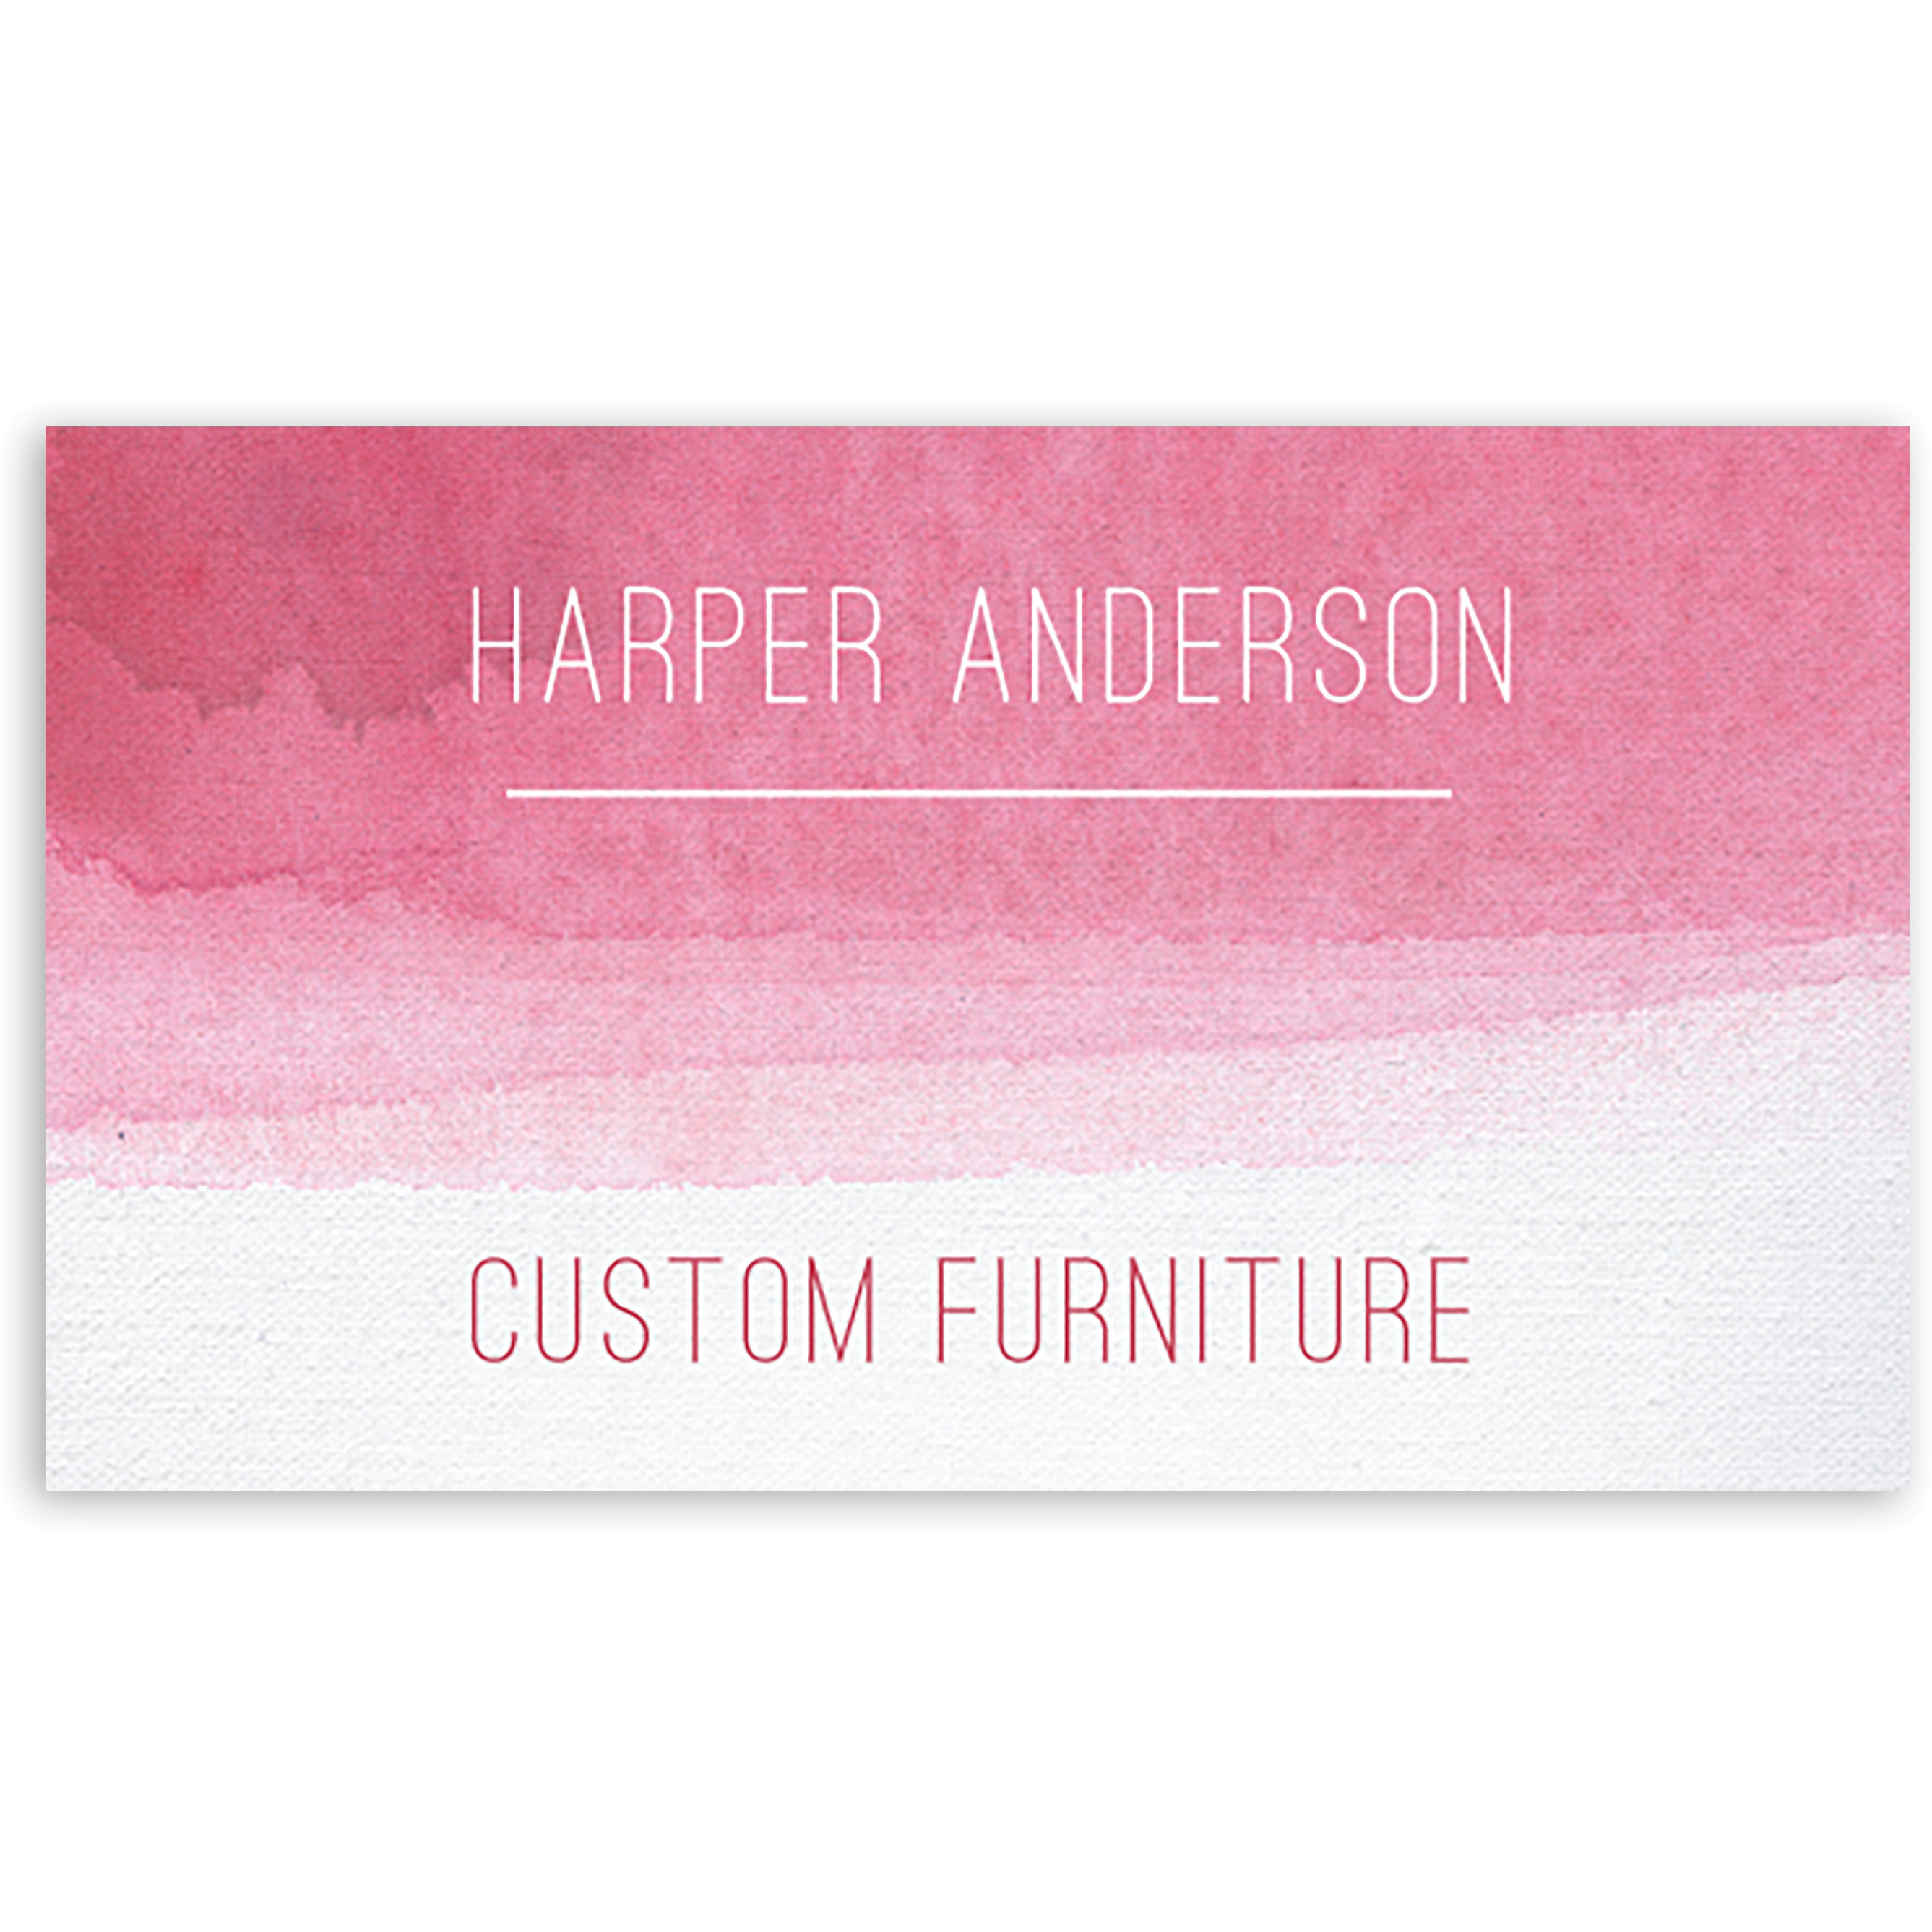 Aqua Tones - Personalized 3.5 x 2 Business Card